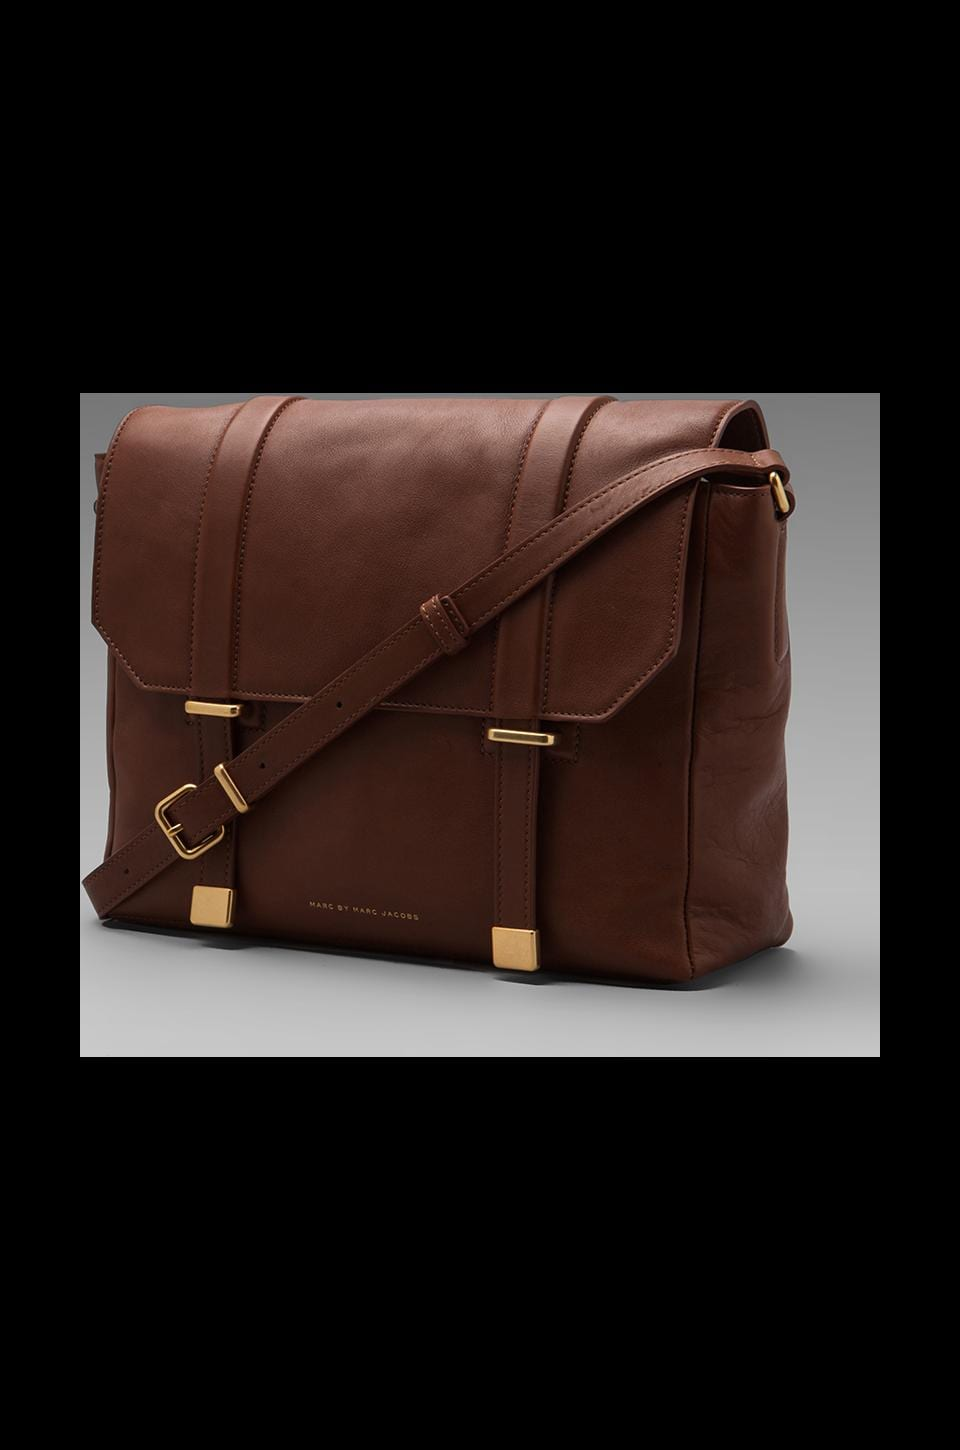 Marc by Marc Jacobs Natural Selection Messenger in Cinnamon Stick